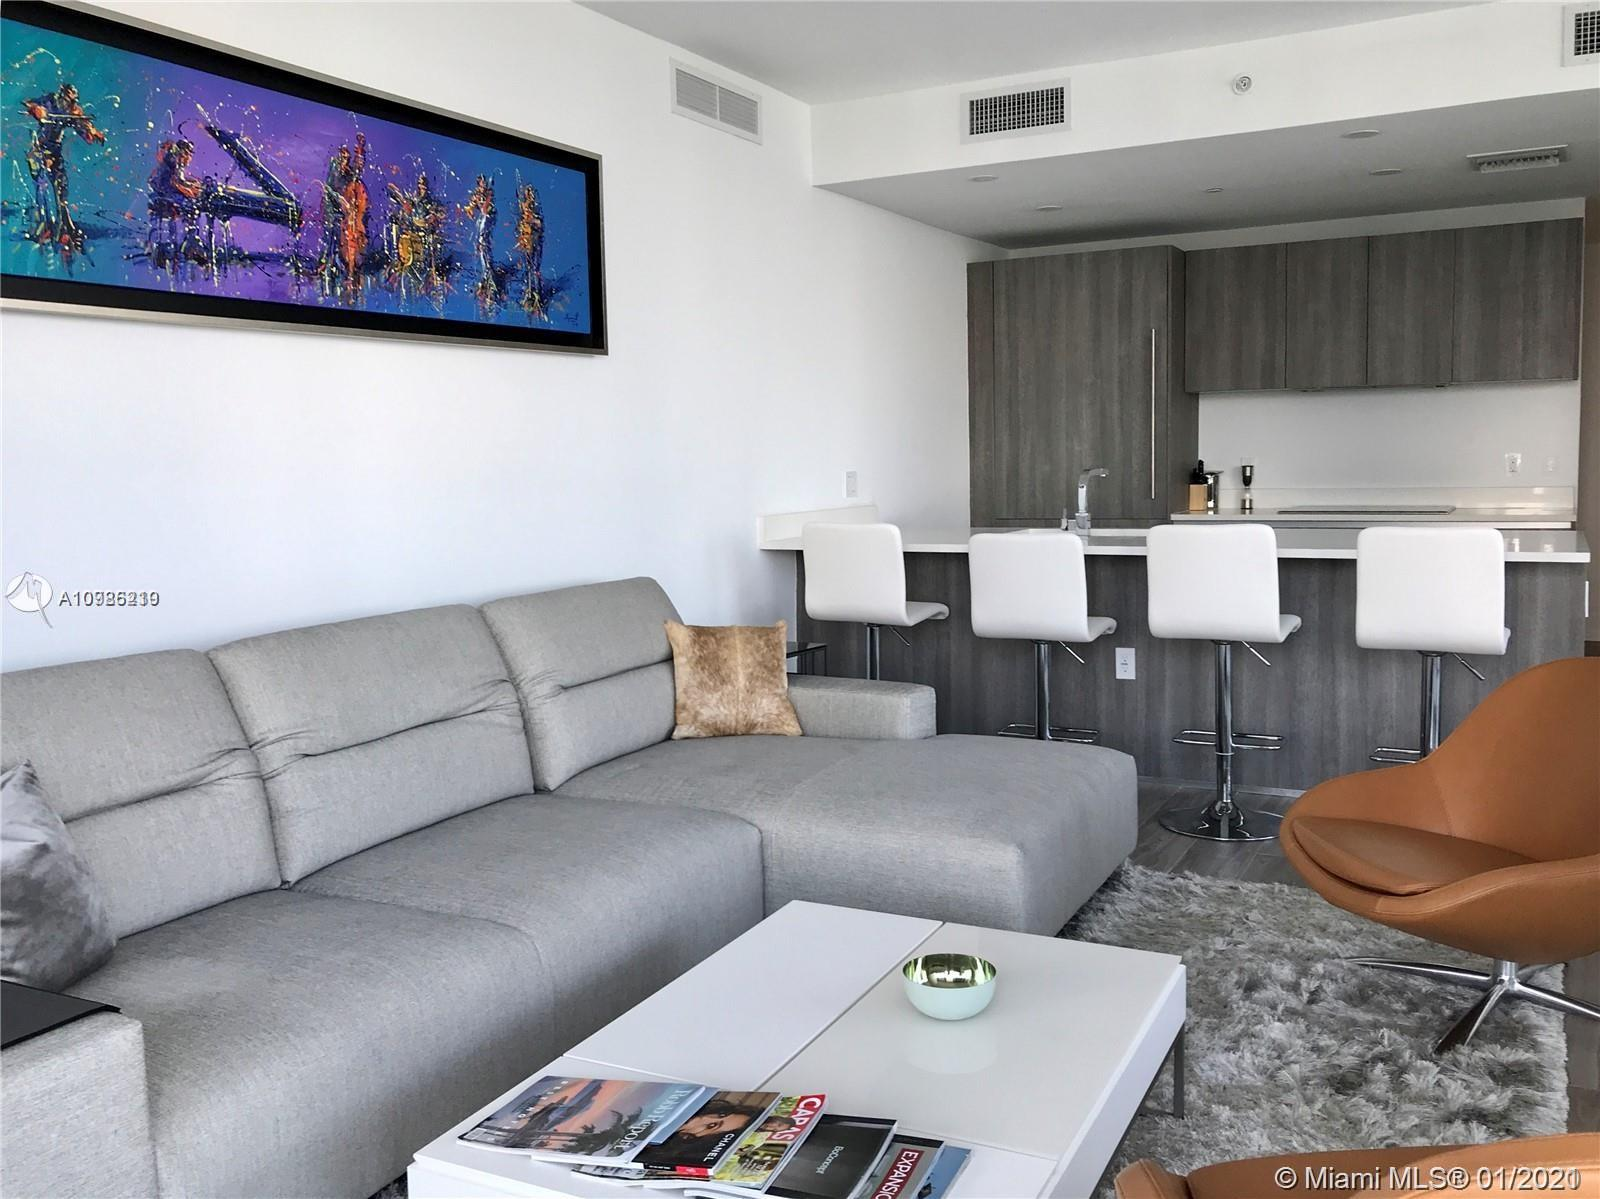 3/3 with 3 self park assigned spaces on a Spectacular corner at the sophisticated SLS LUX! BRAND NEW. Wrap around balcony with sweeping views of Biscayne Bay & Brickell skyline. The unit is fully furnished by Bo Concept, the kitchen upgraded (Sub Zero, Wolf and Bosch appliances ) and the bath upgraded too. Custom built closets and electronic blinds all over the apartment. Three (3) assigned self parking spaces. SLS Lux has the best common areas by world renowned designer Yabu Pushelberg. Amenities include: 2 pools, fitness center, spa/sauna, kids room, game room, rock climbing wall, bbq area, tennis court, basketball court. Serices include 24H concierge, valet and security, plus room service from Katsuya restaurant and much more. Easy to show. Text agent directly.